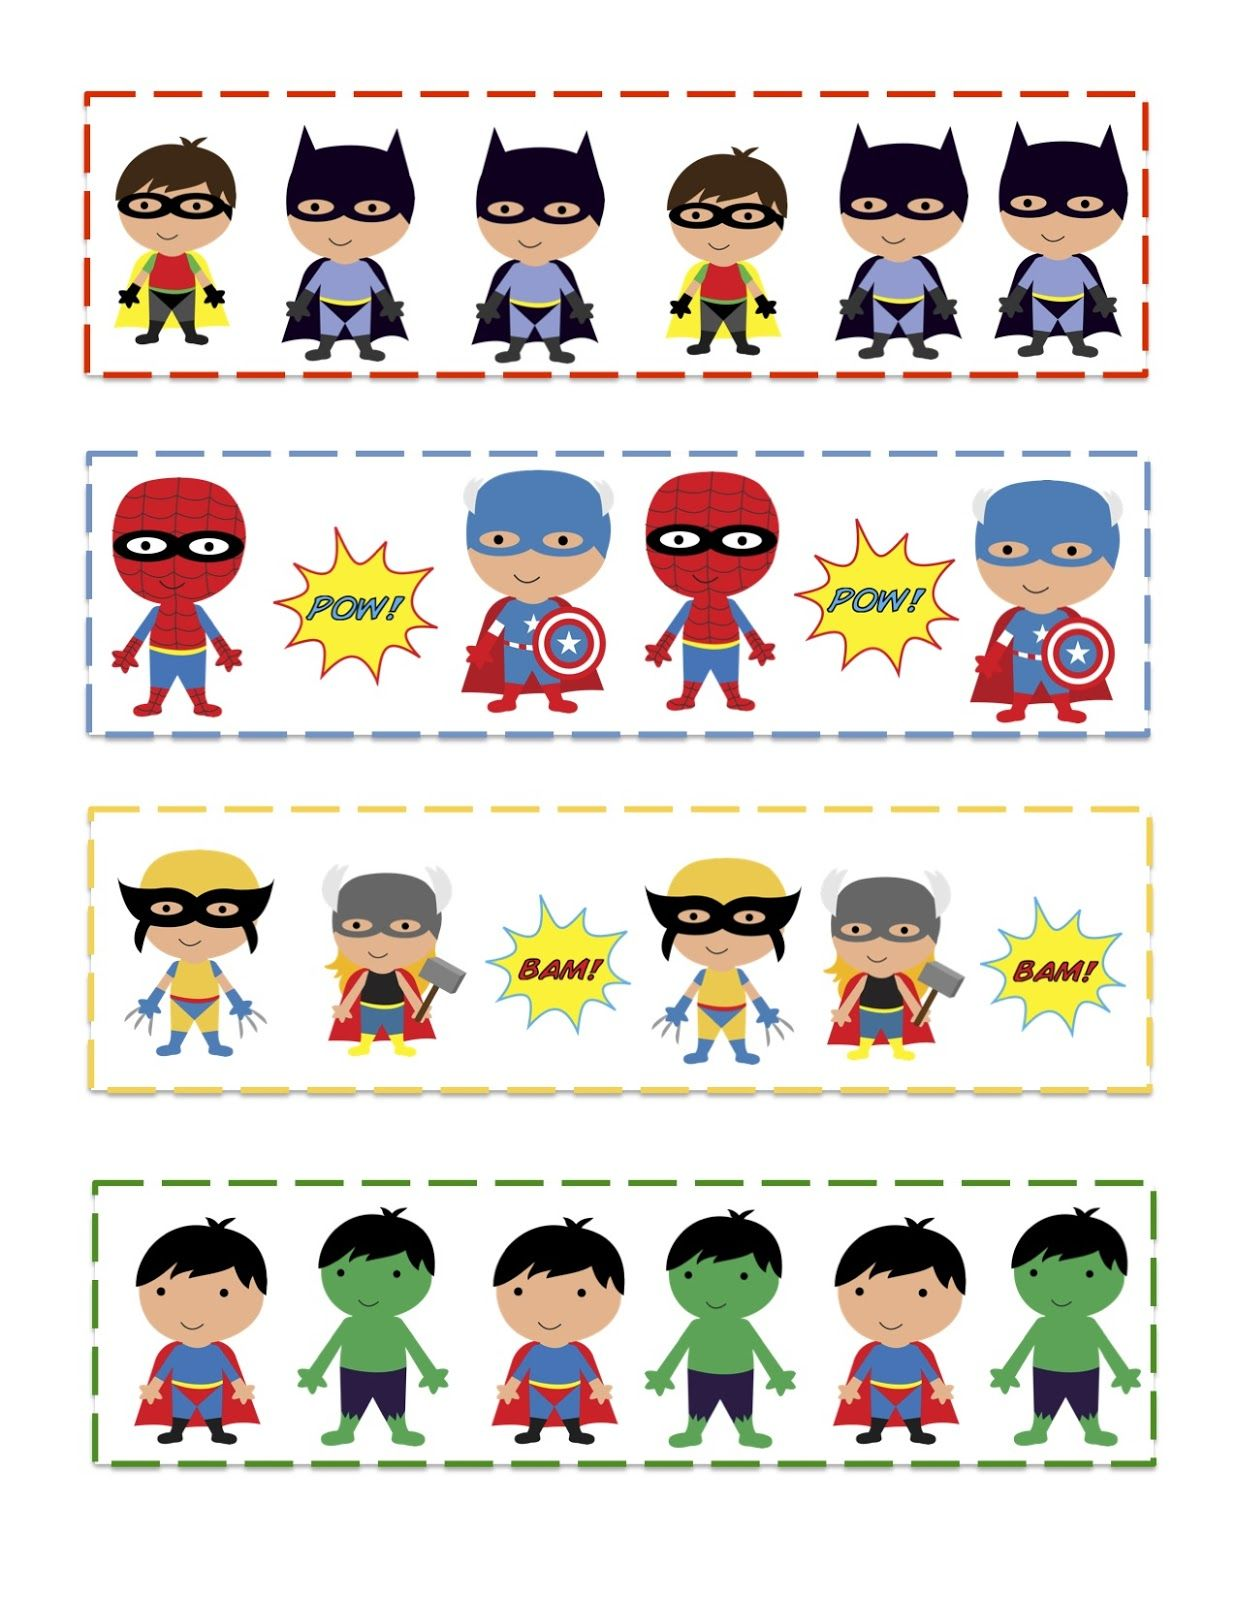 Super Hero S Pattern Cards Ashleys Llewellyn You Should Use These For Your Little